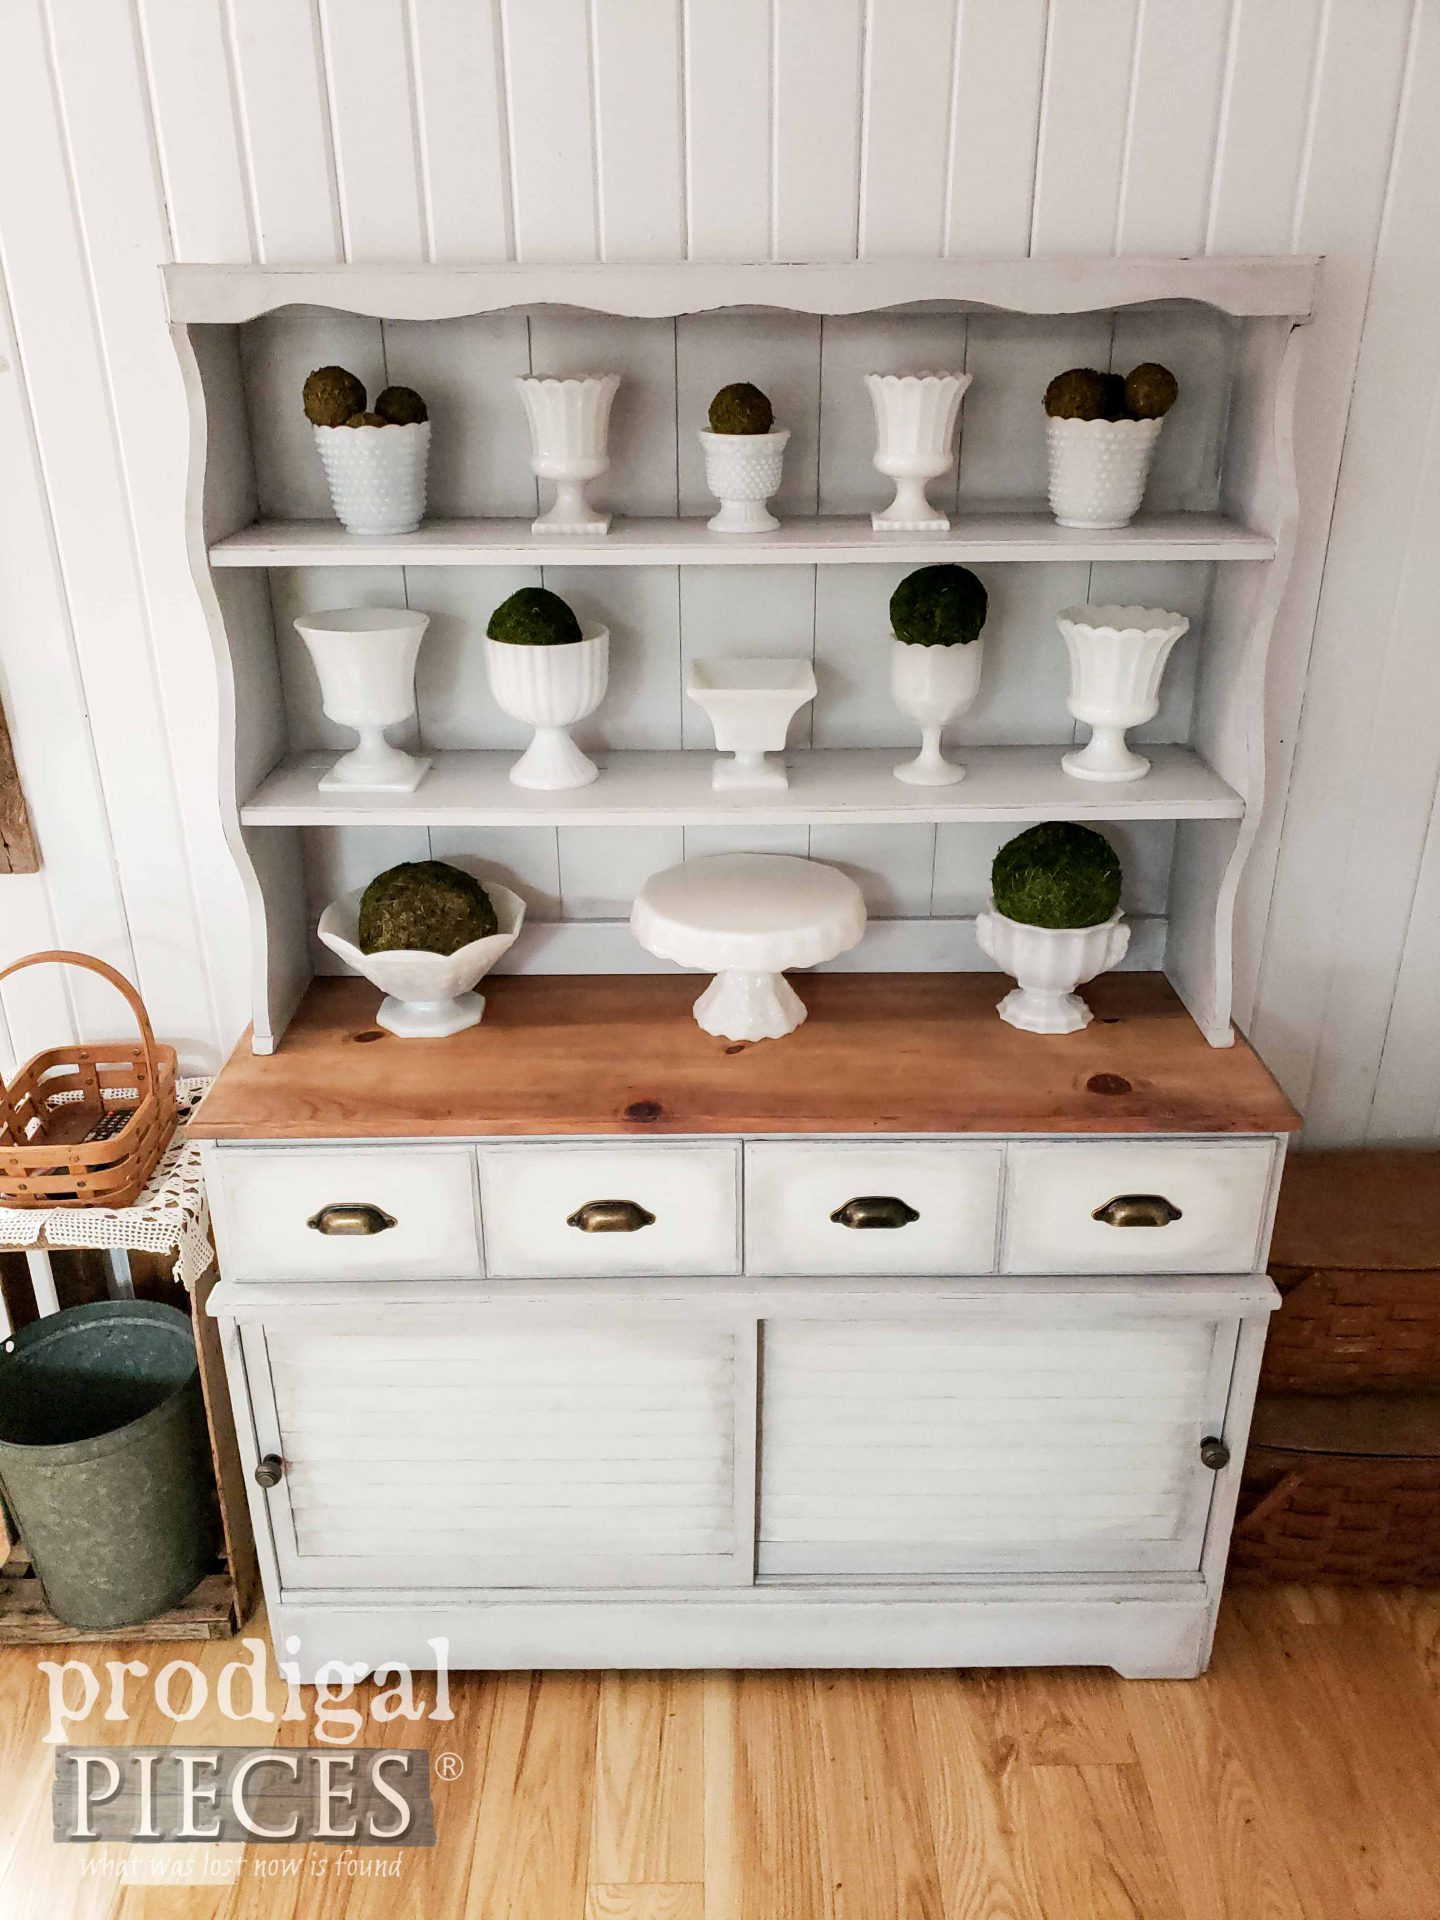 Top View of Farmhouse Hutch after Makeover by Larissa of Prodigal Pieces | prodigalpieces.com #prodigalpieces #diy #home #homedecor #furniture